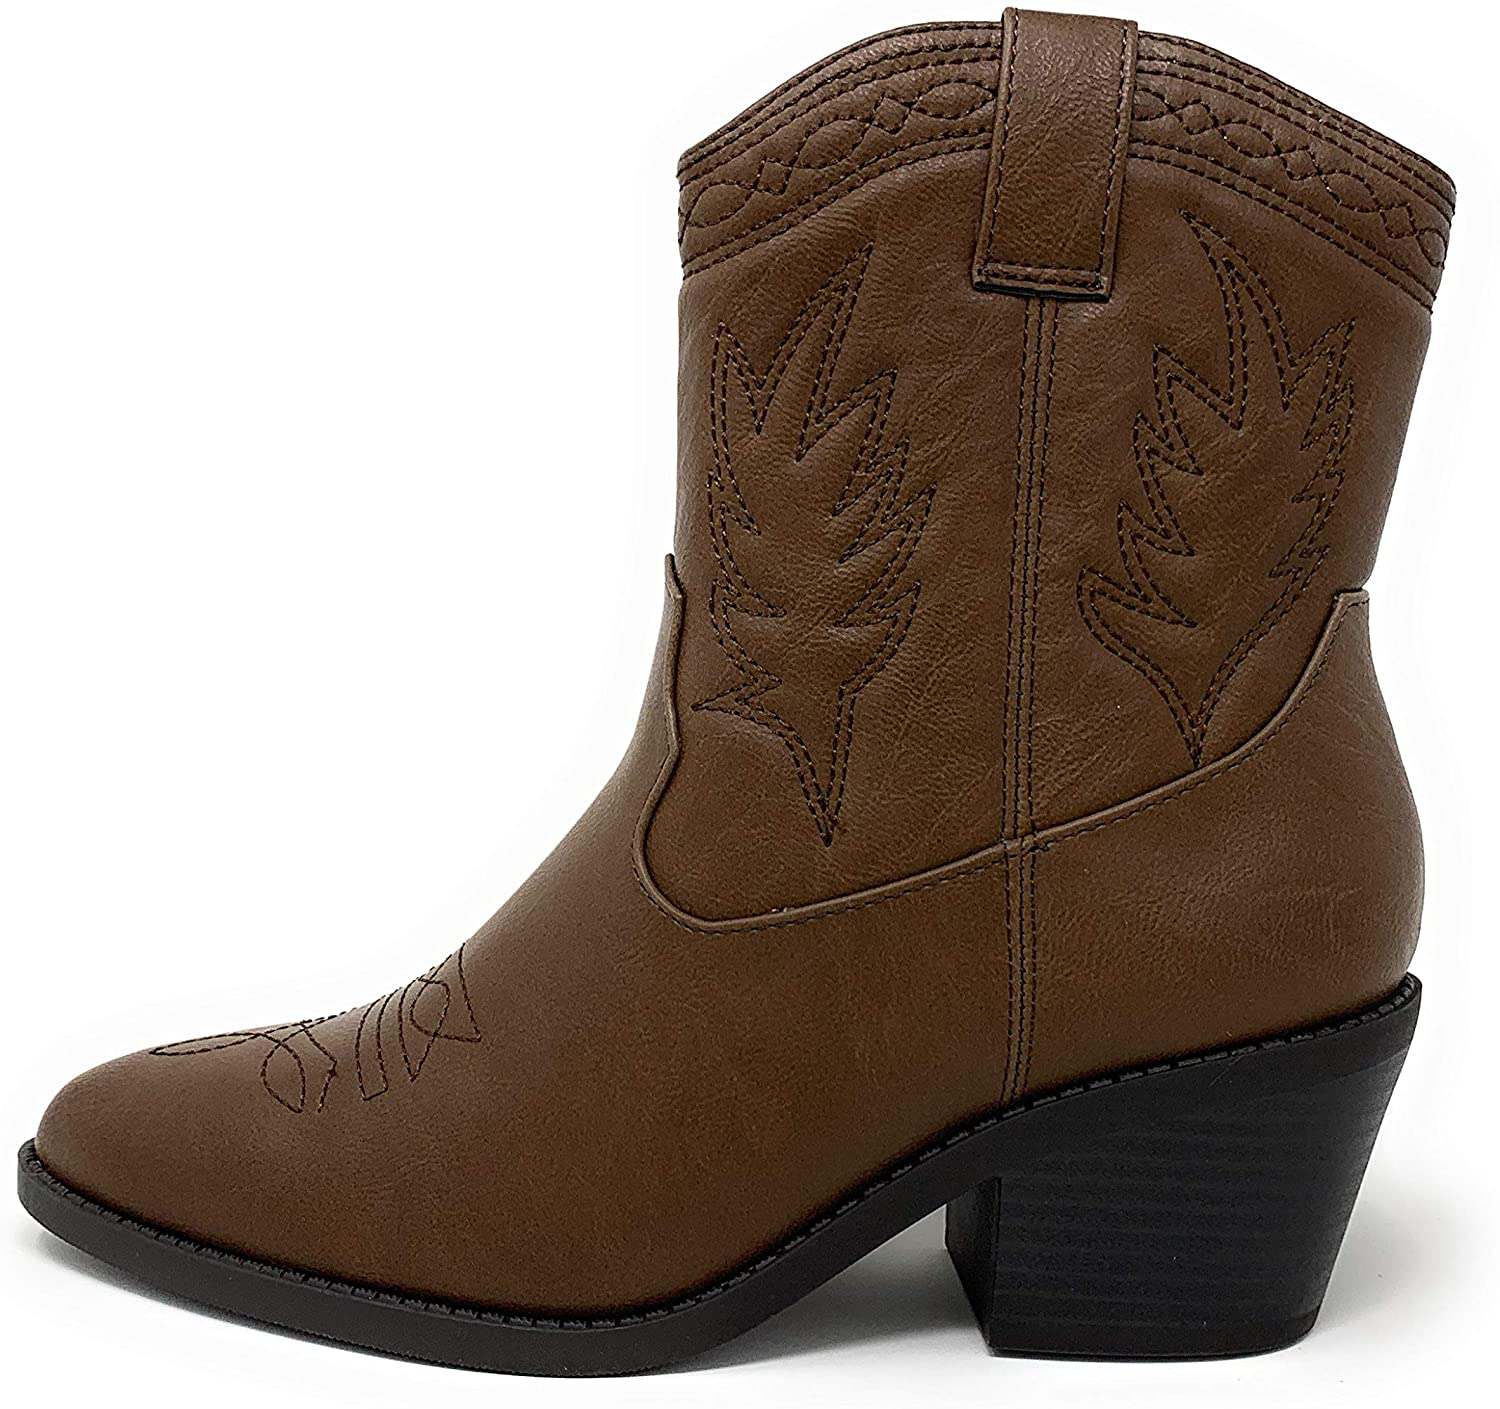 Soda Picotee Women Western Cowboy Cowgirl Stitched Ankle Boots (11, DK TAN PU)